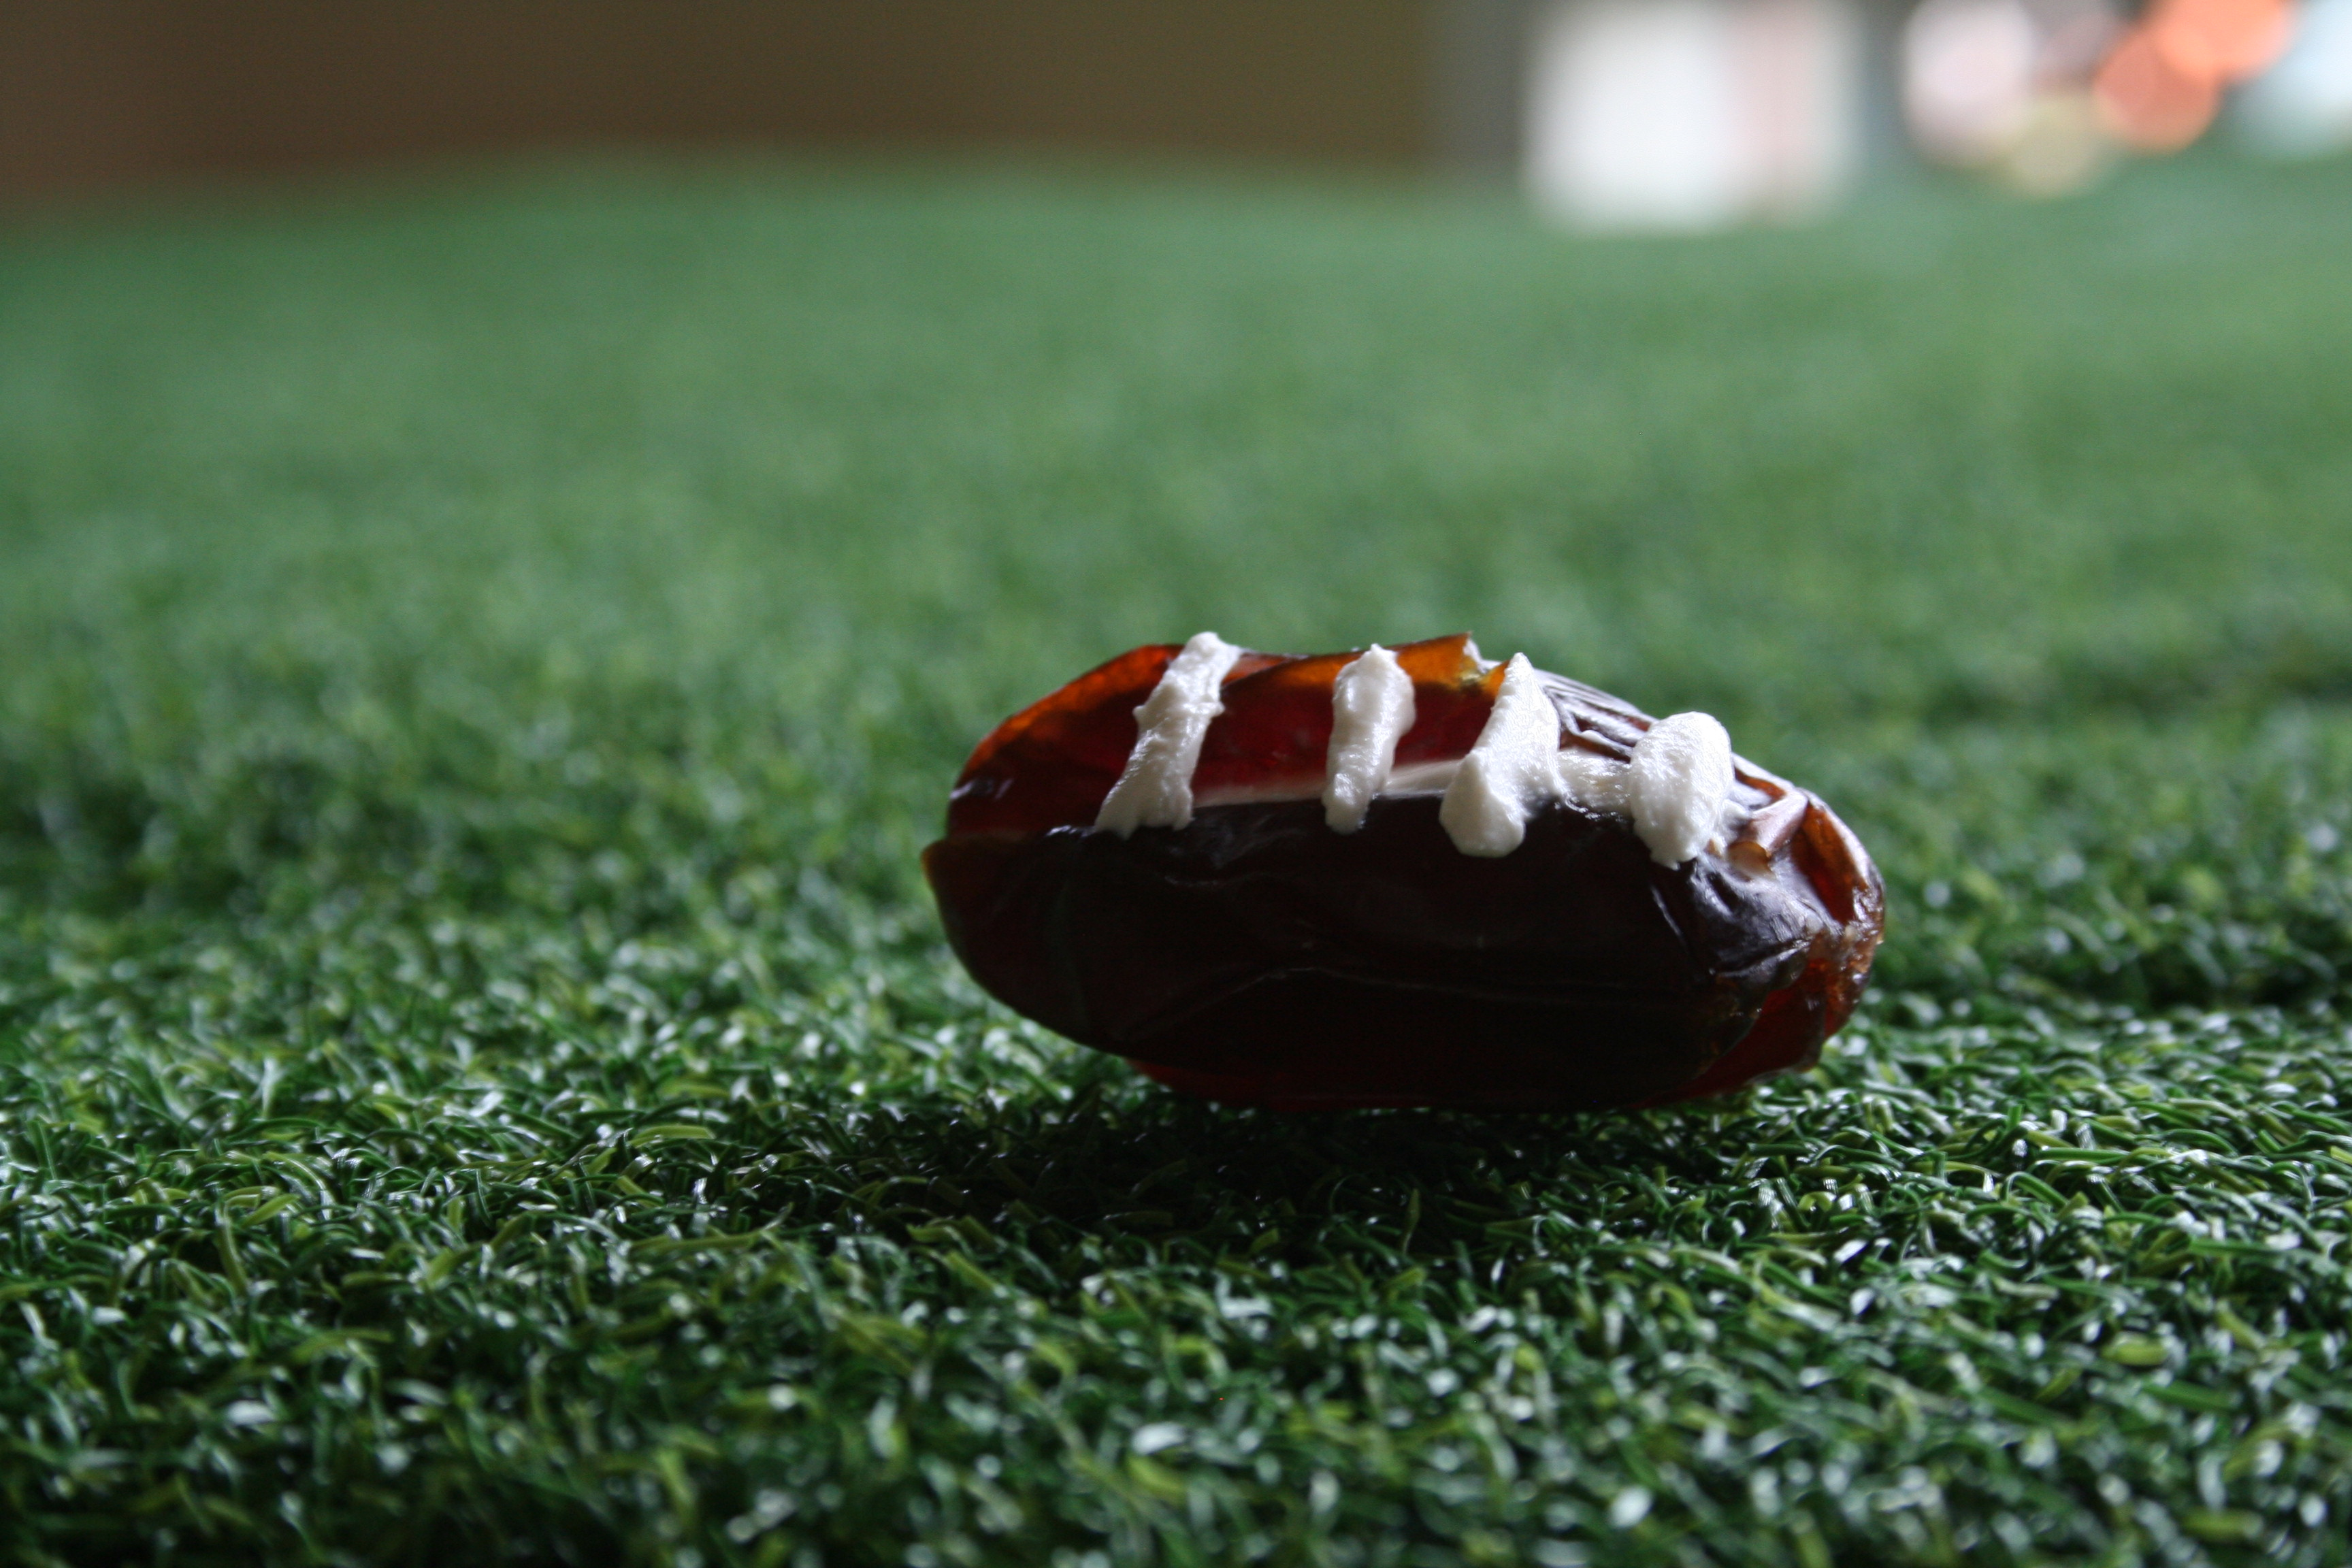 Stuffed Date Football close up on fake grass.